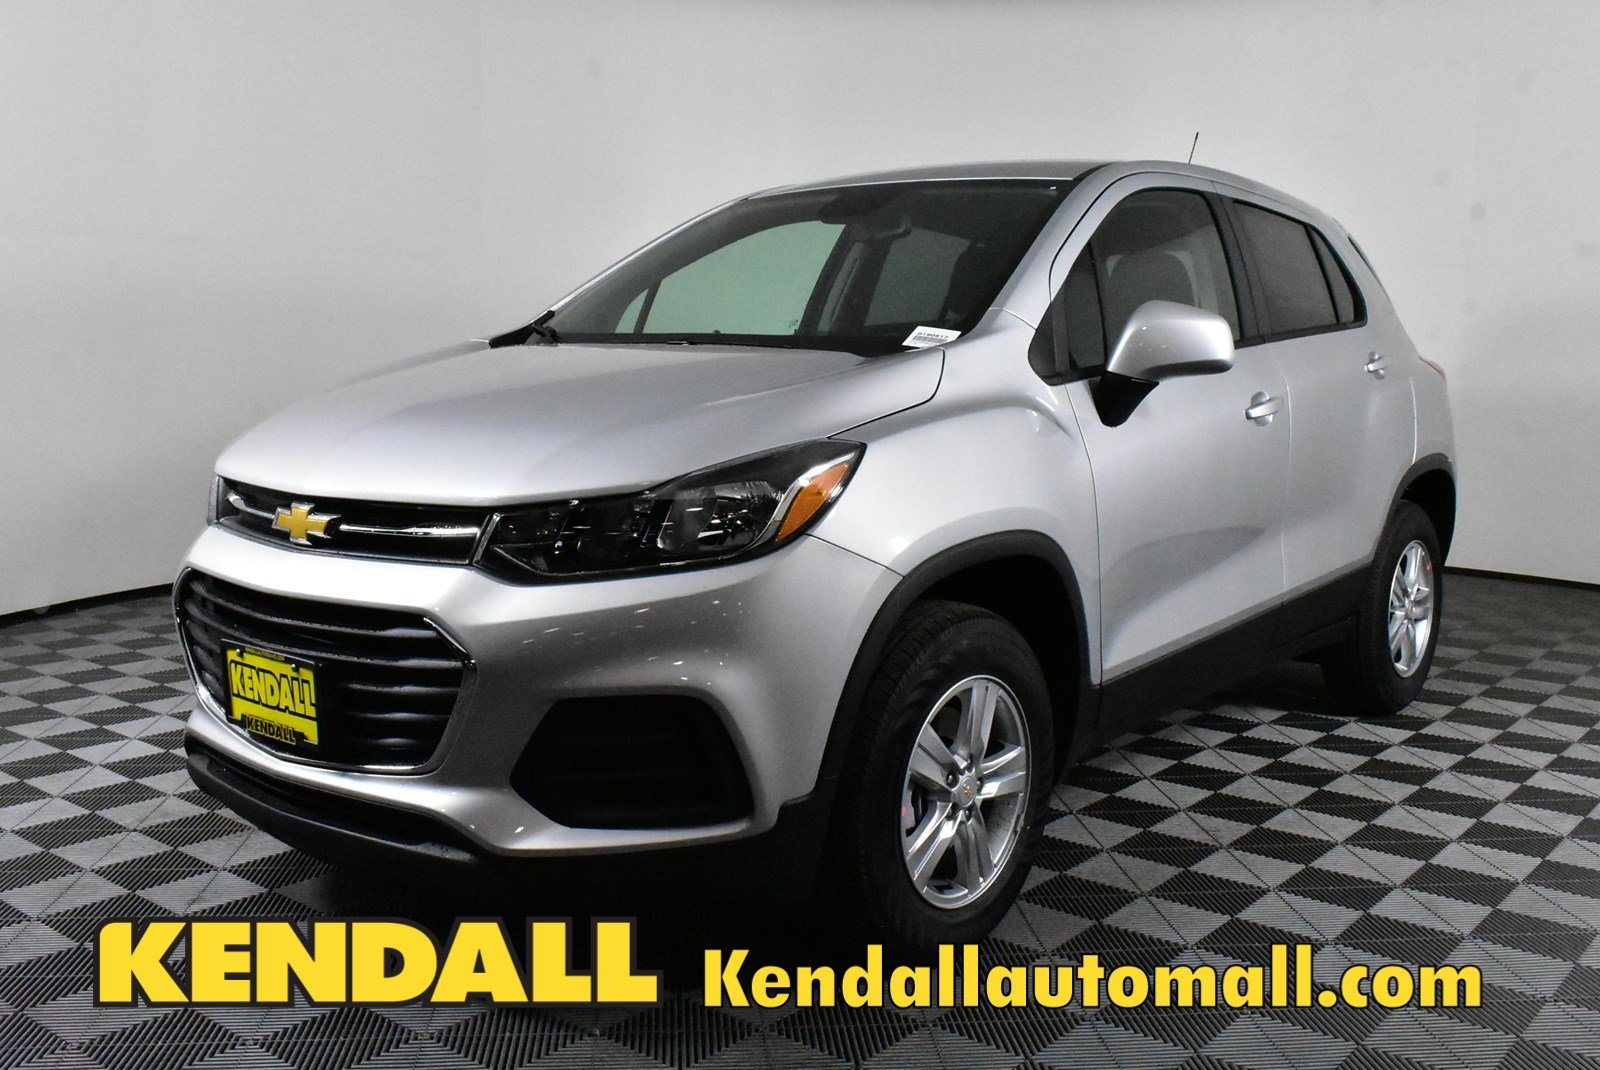 Lease Specials In Nampa Idaho Kendall At The Center Auto Mall 2002 Dodge Durango Fuel Filter A New 2019 Chevrolet Trax Ls Awd